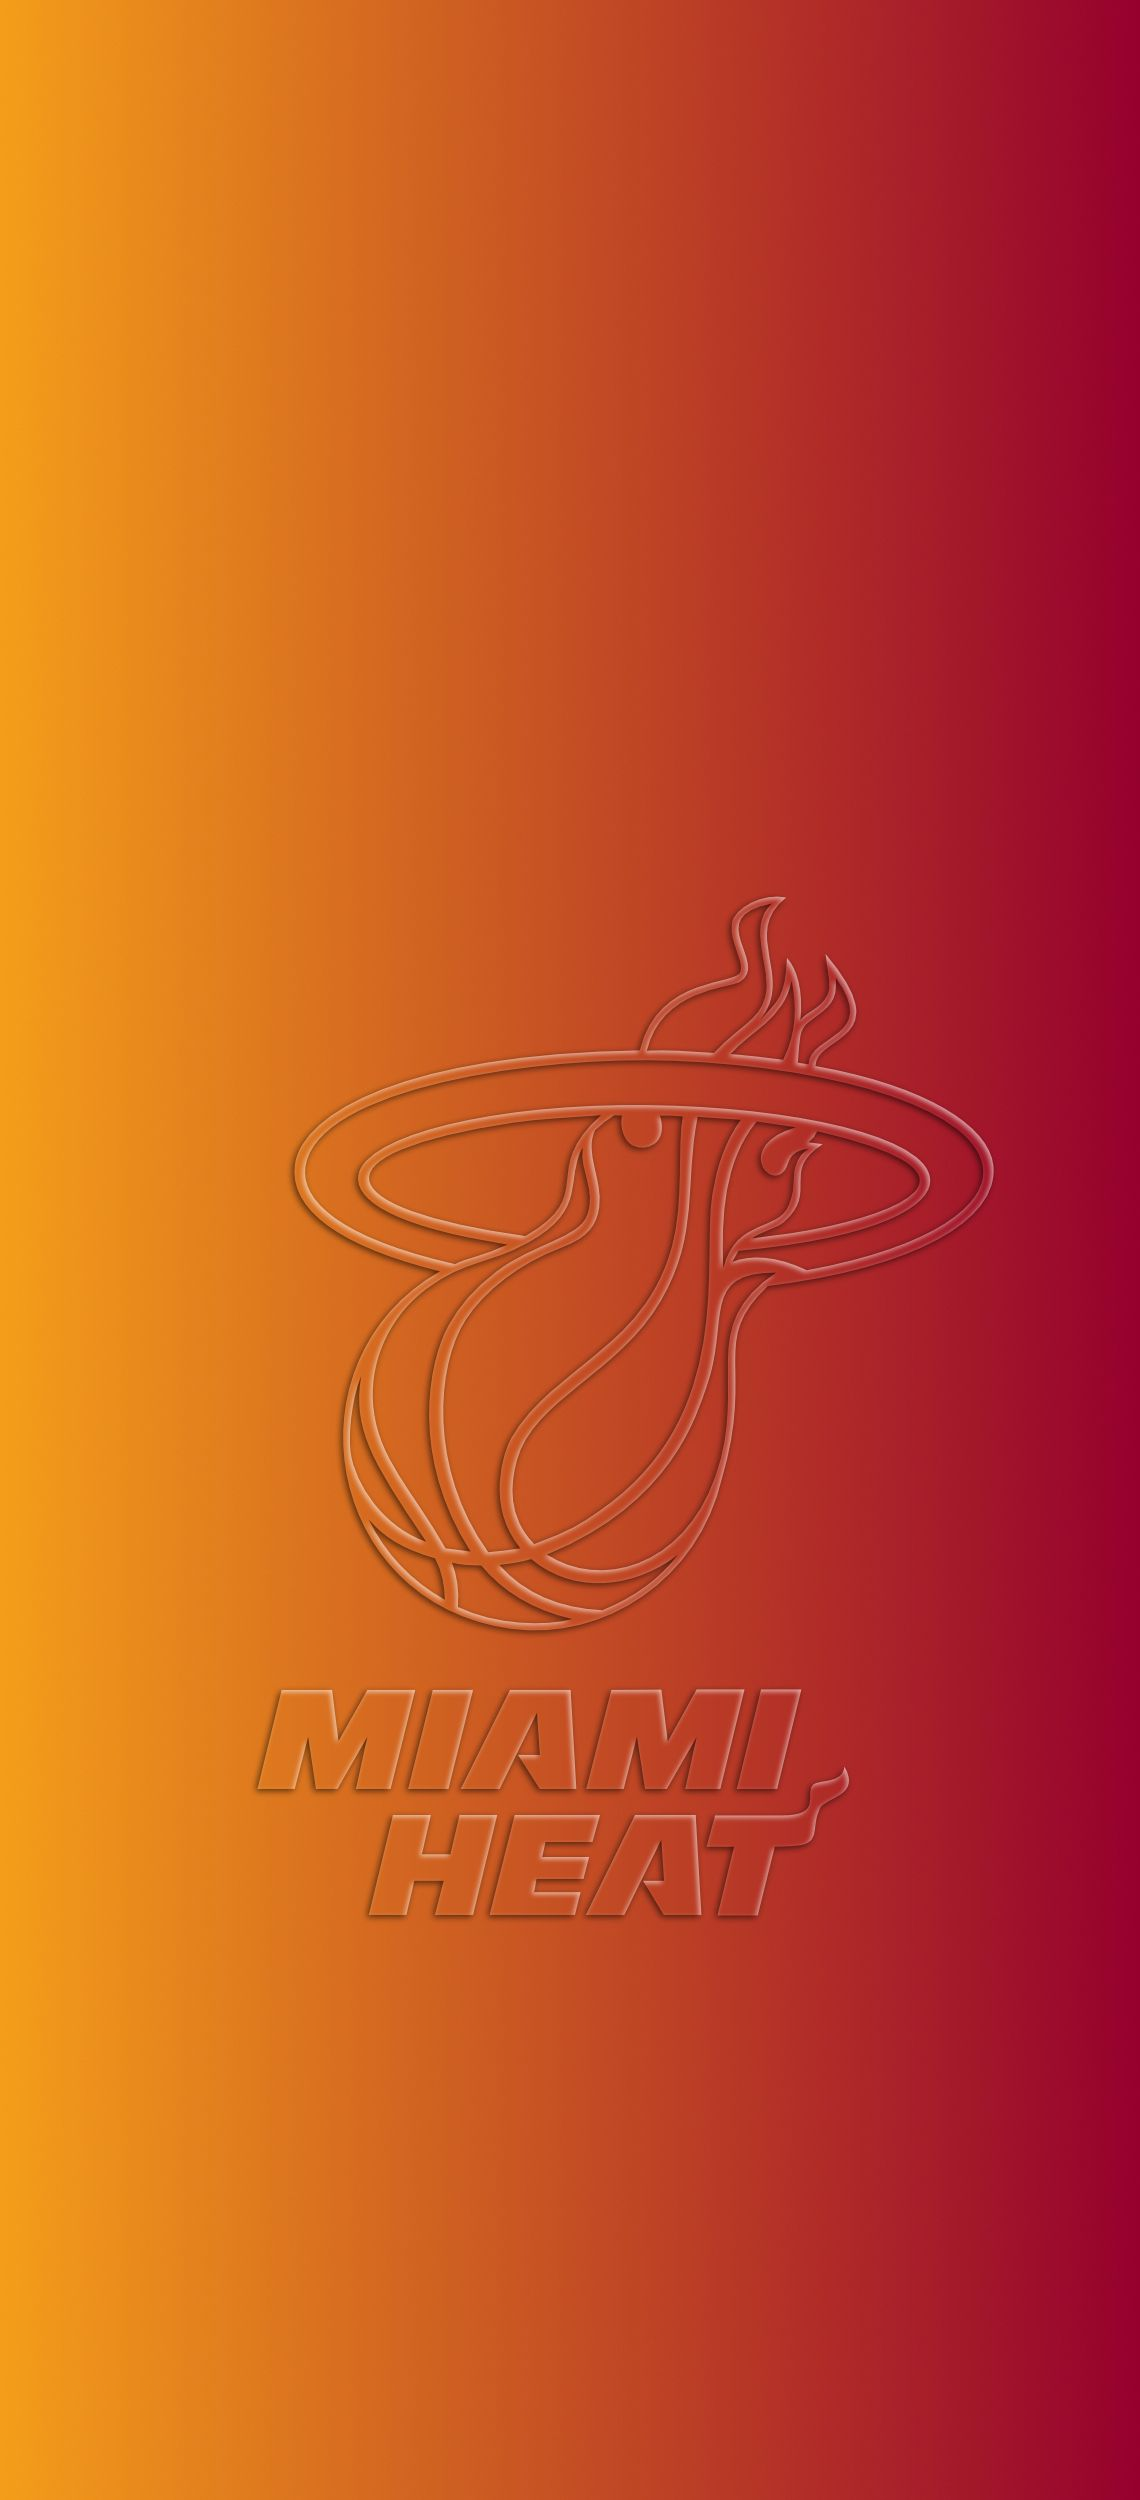 Sportsign Shop Redbubble Miami Heat Miami Heat Basketball Nba Basketball Teams